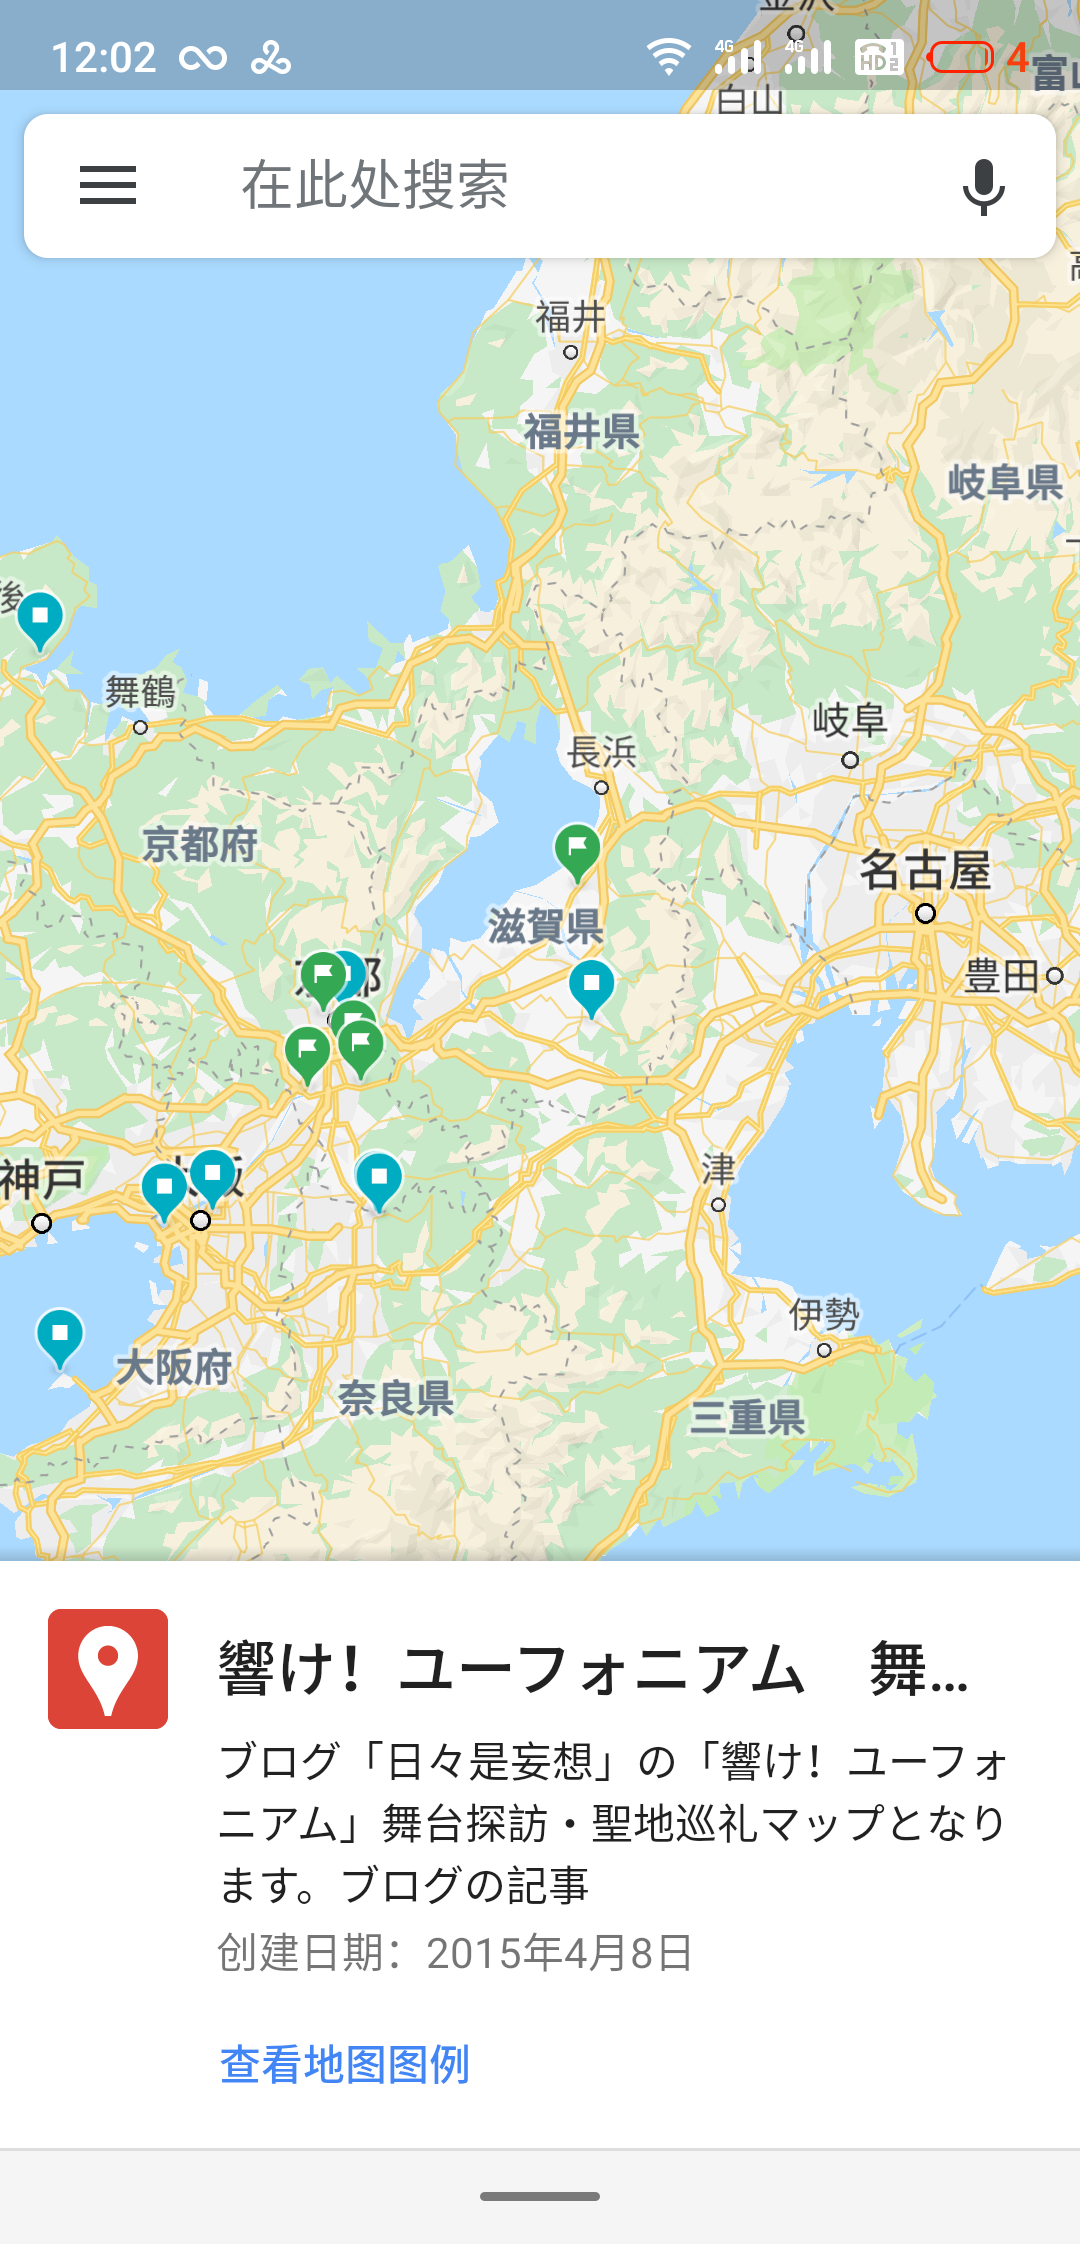 google map app couldn't show mymap's markers on my android ... on google maps, maps maps, gogel maps, gooogle maps, googlee maps, ggoogle maps, satellite maps, search maps, goo maps, googlr maps, googlle maps,